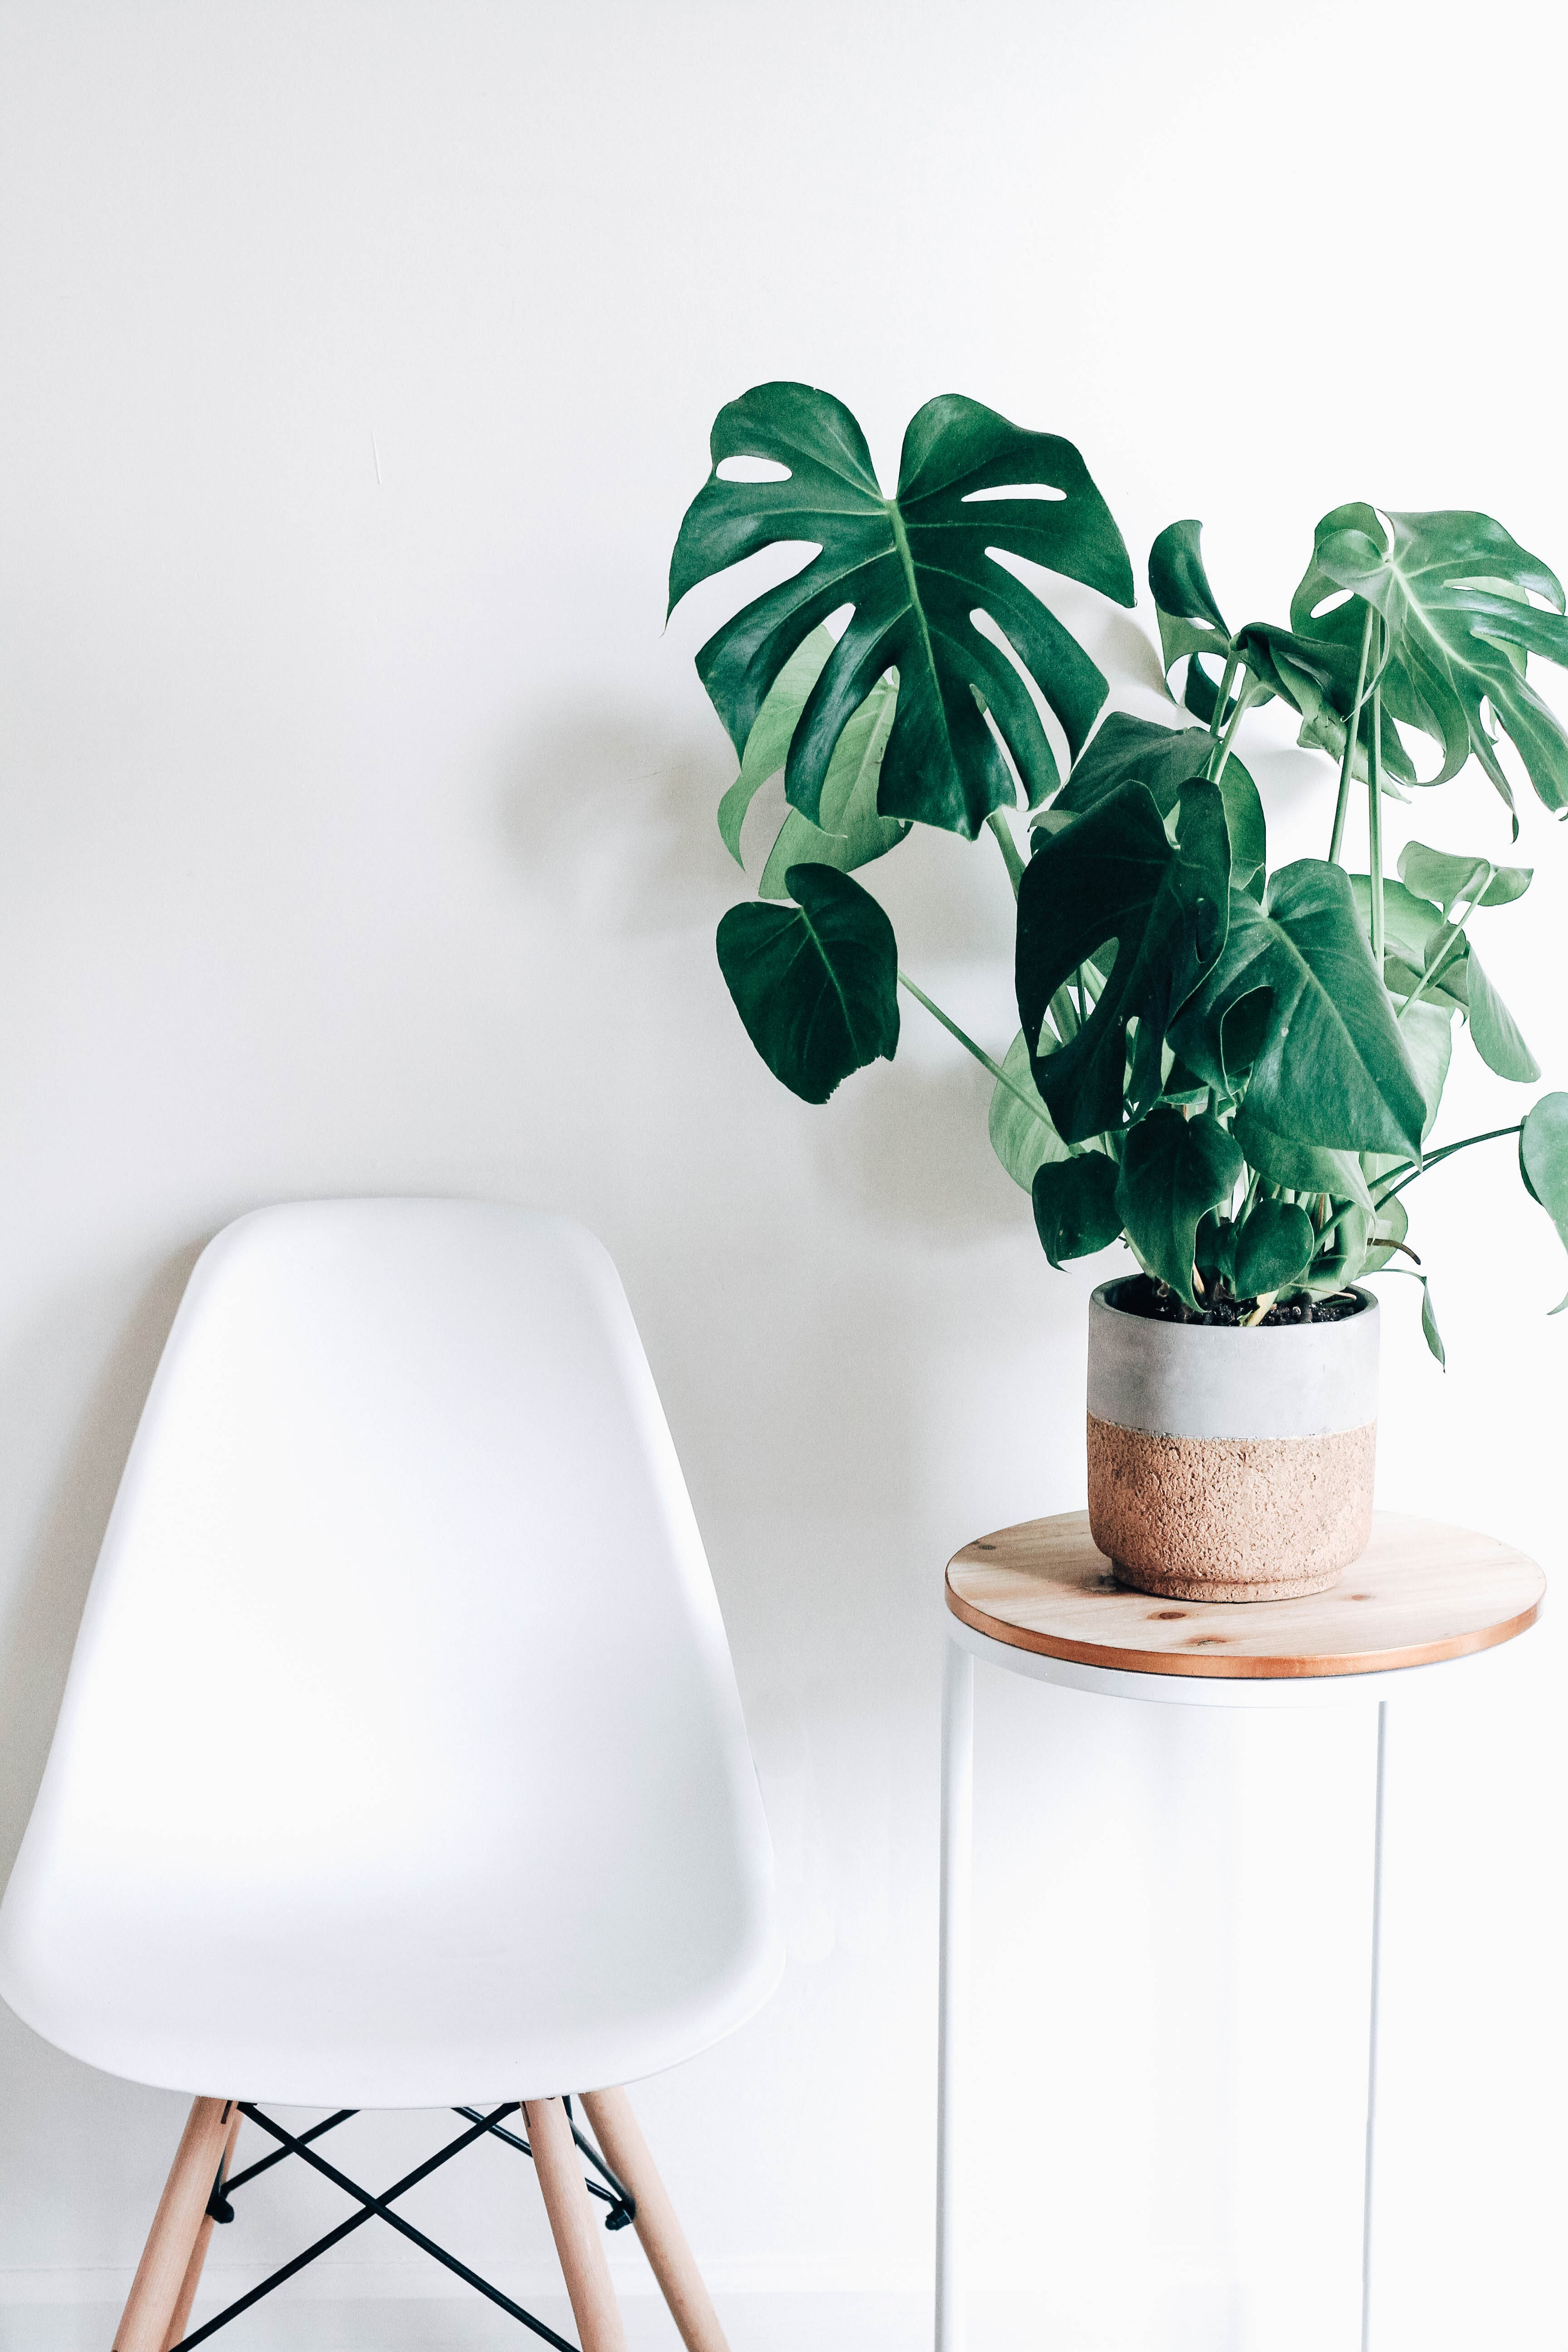 green plant in white ceramic pot